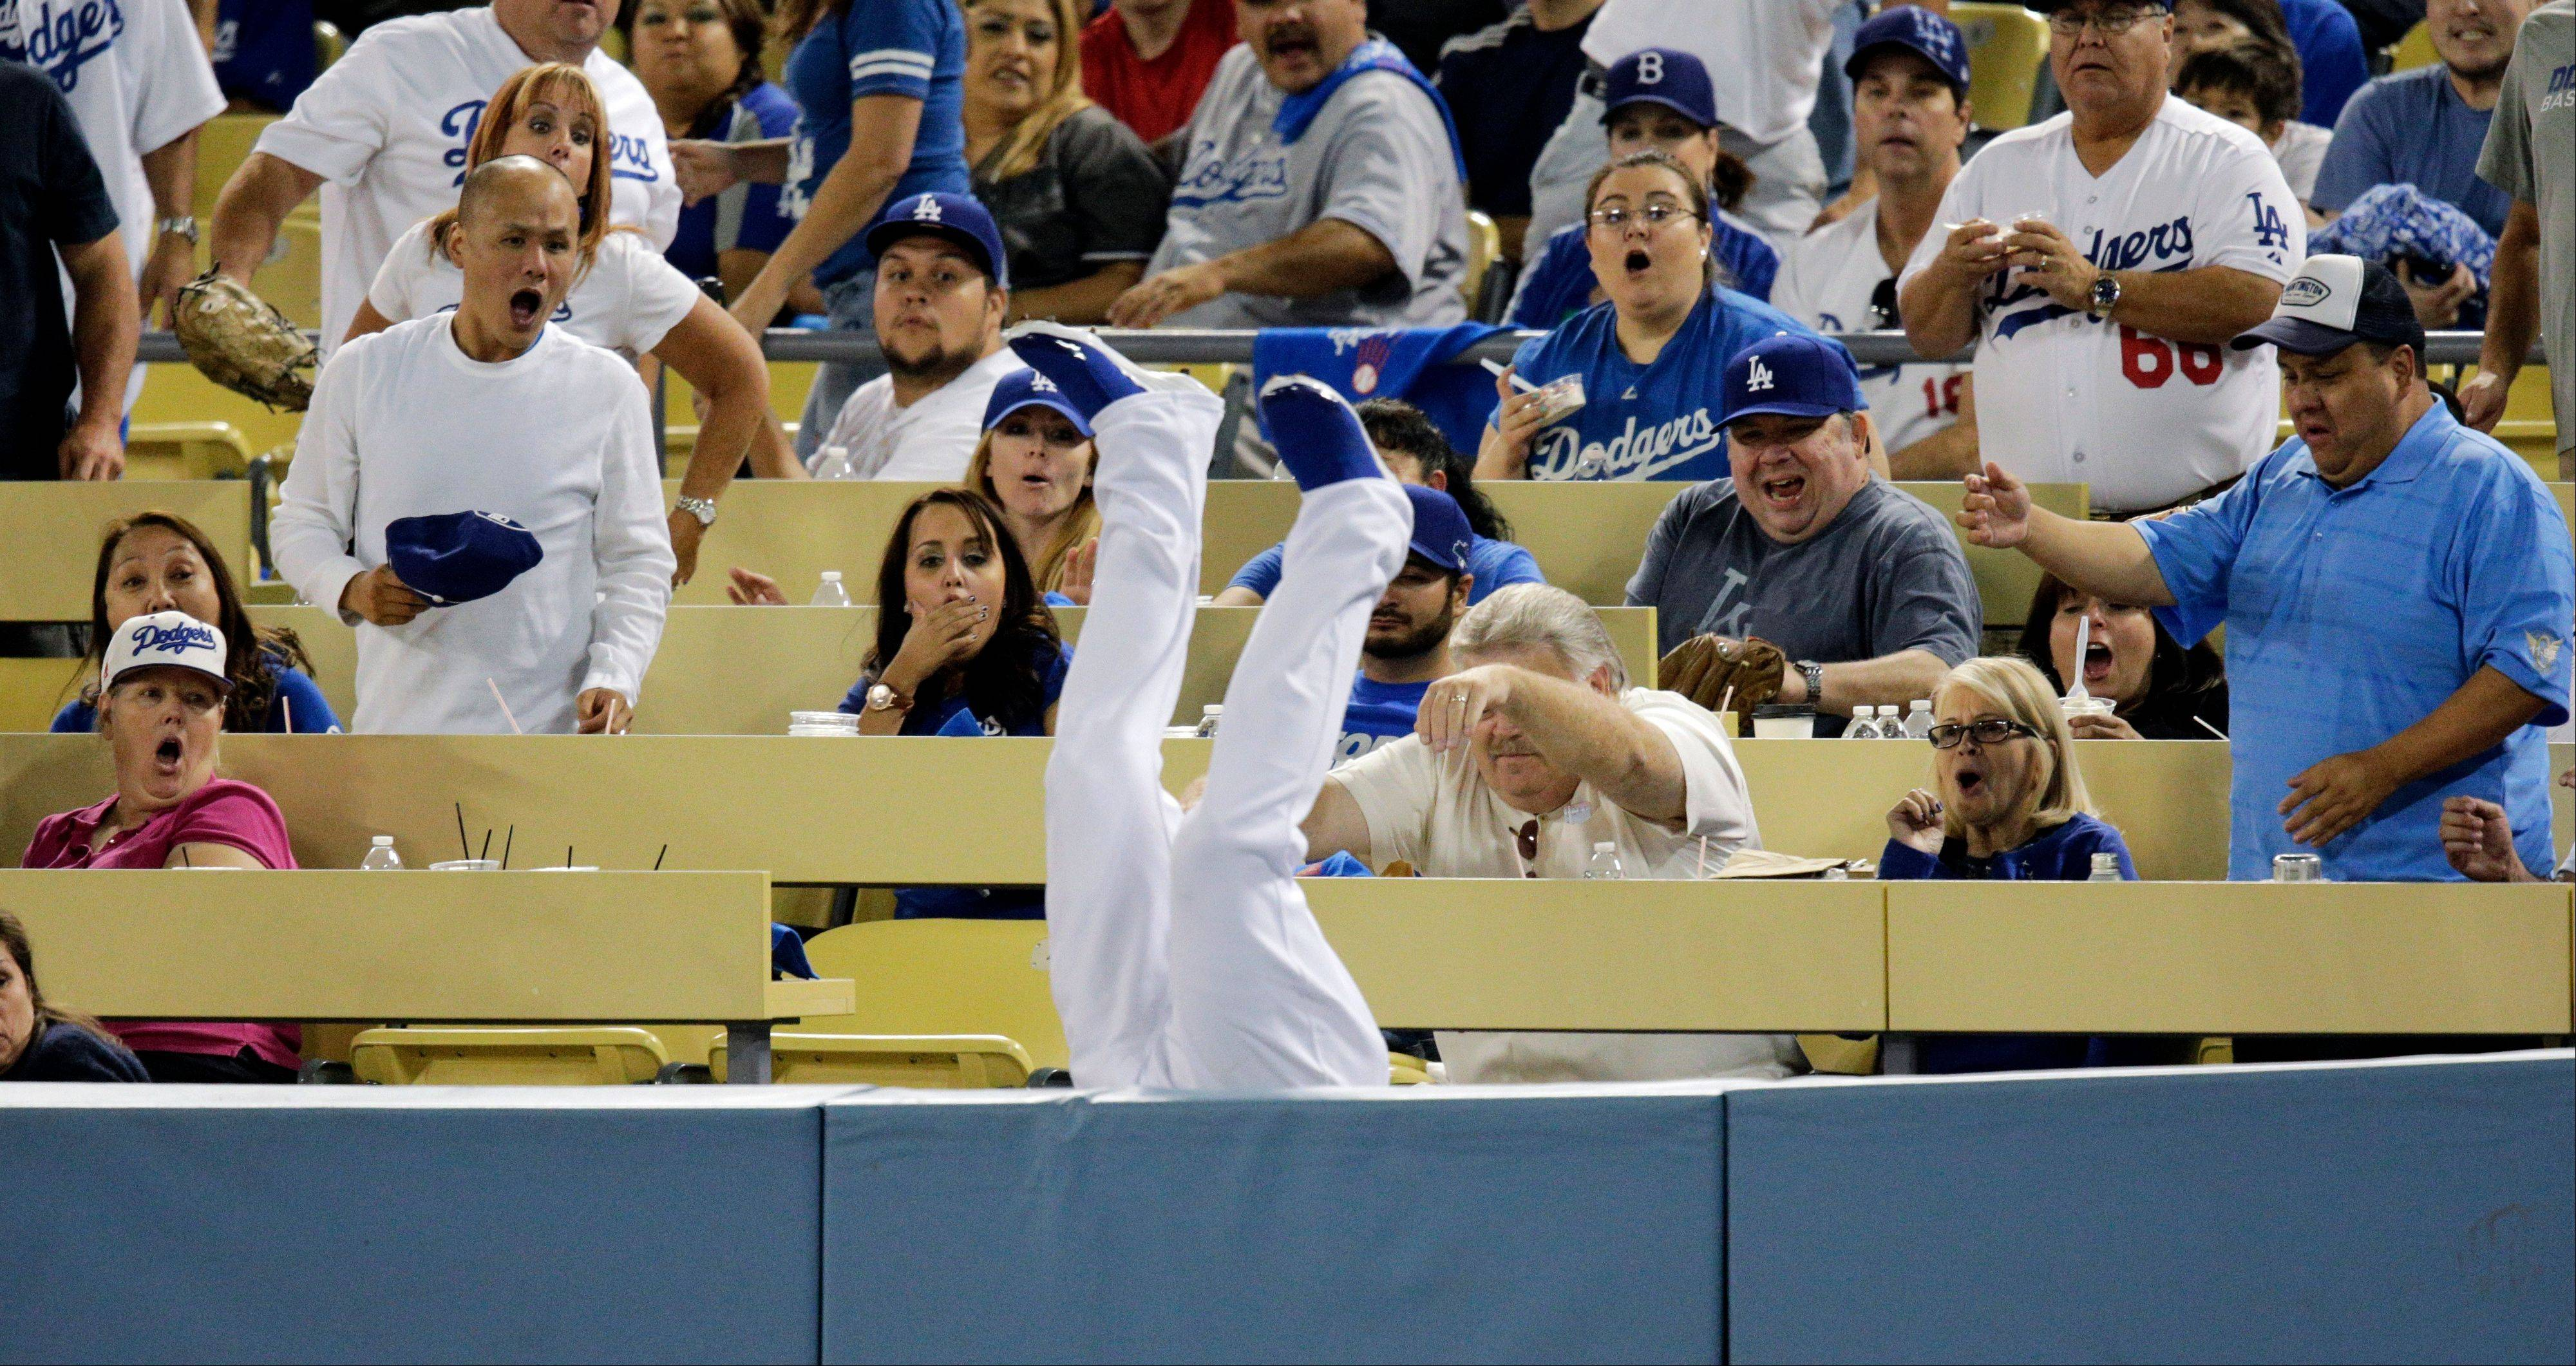 Fans react as Los Angeles Dodgers left fielder Carl Crawford falls upside down over the rail after catching a foul ball hit by Atlanta Braves� Justin Upton during the seventh inning in Game 3 of the National League division baseball series Sunday, Oct. 6, 2013, in Los Angeles.